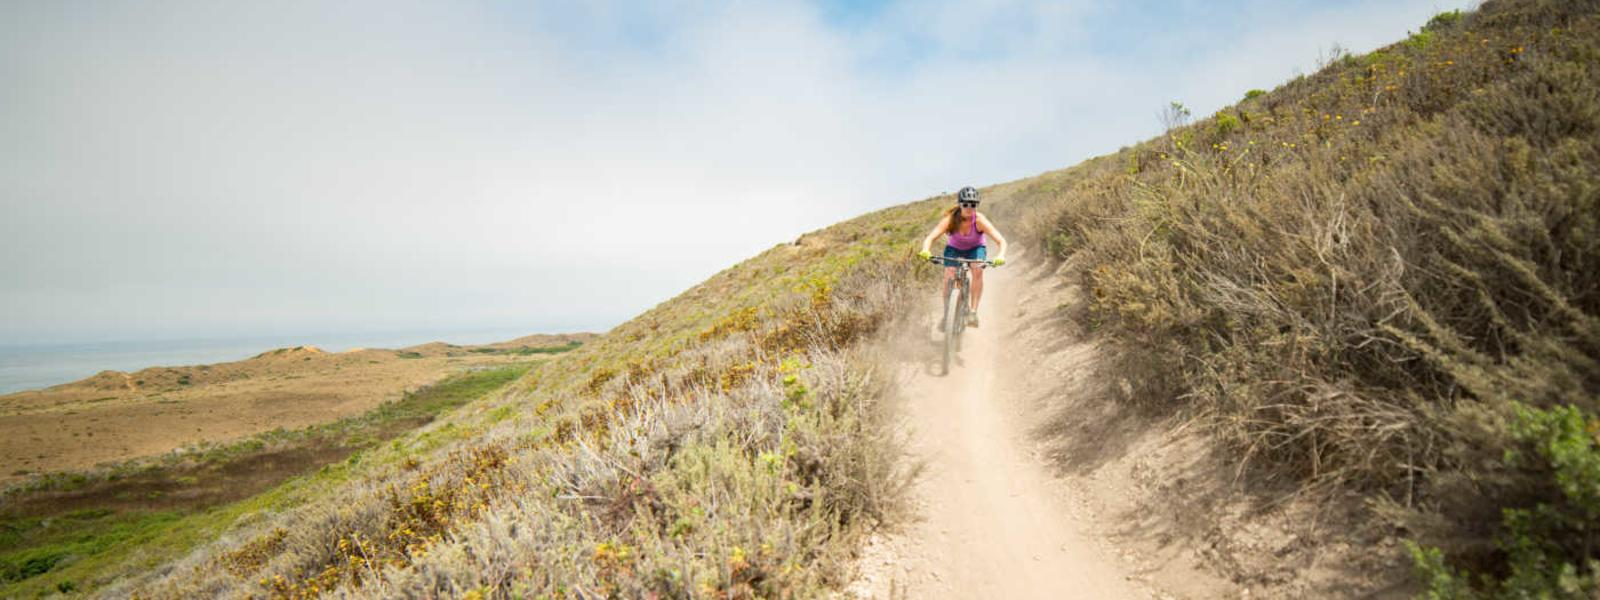 A woman biking down a dirt path in San Luis Obispo